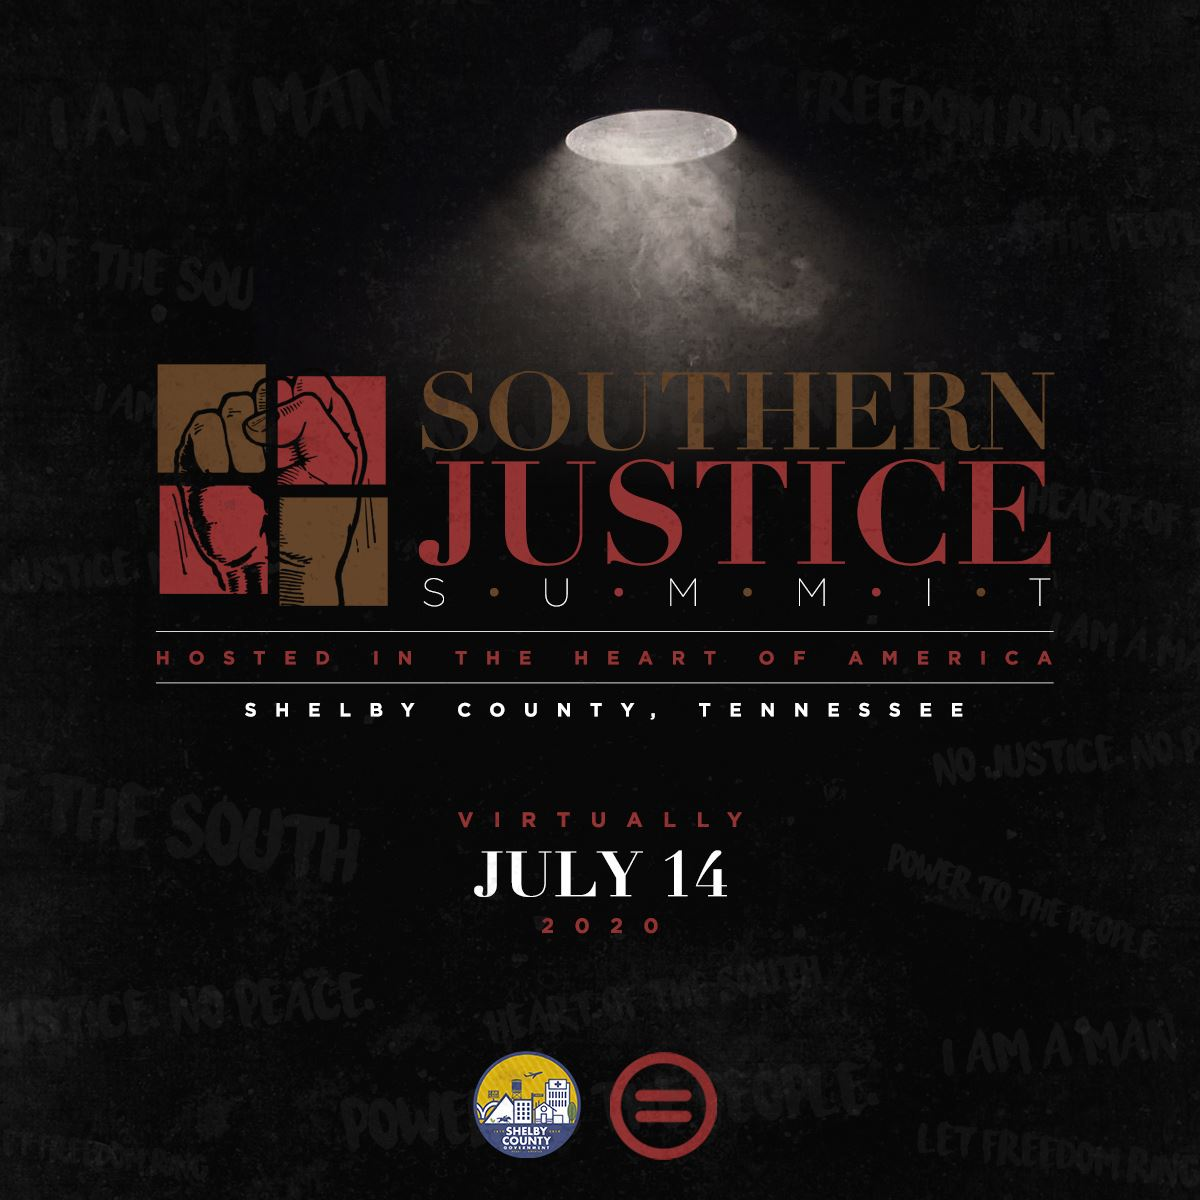 Southern Justice Summit